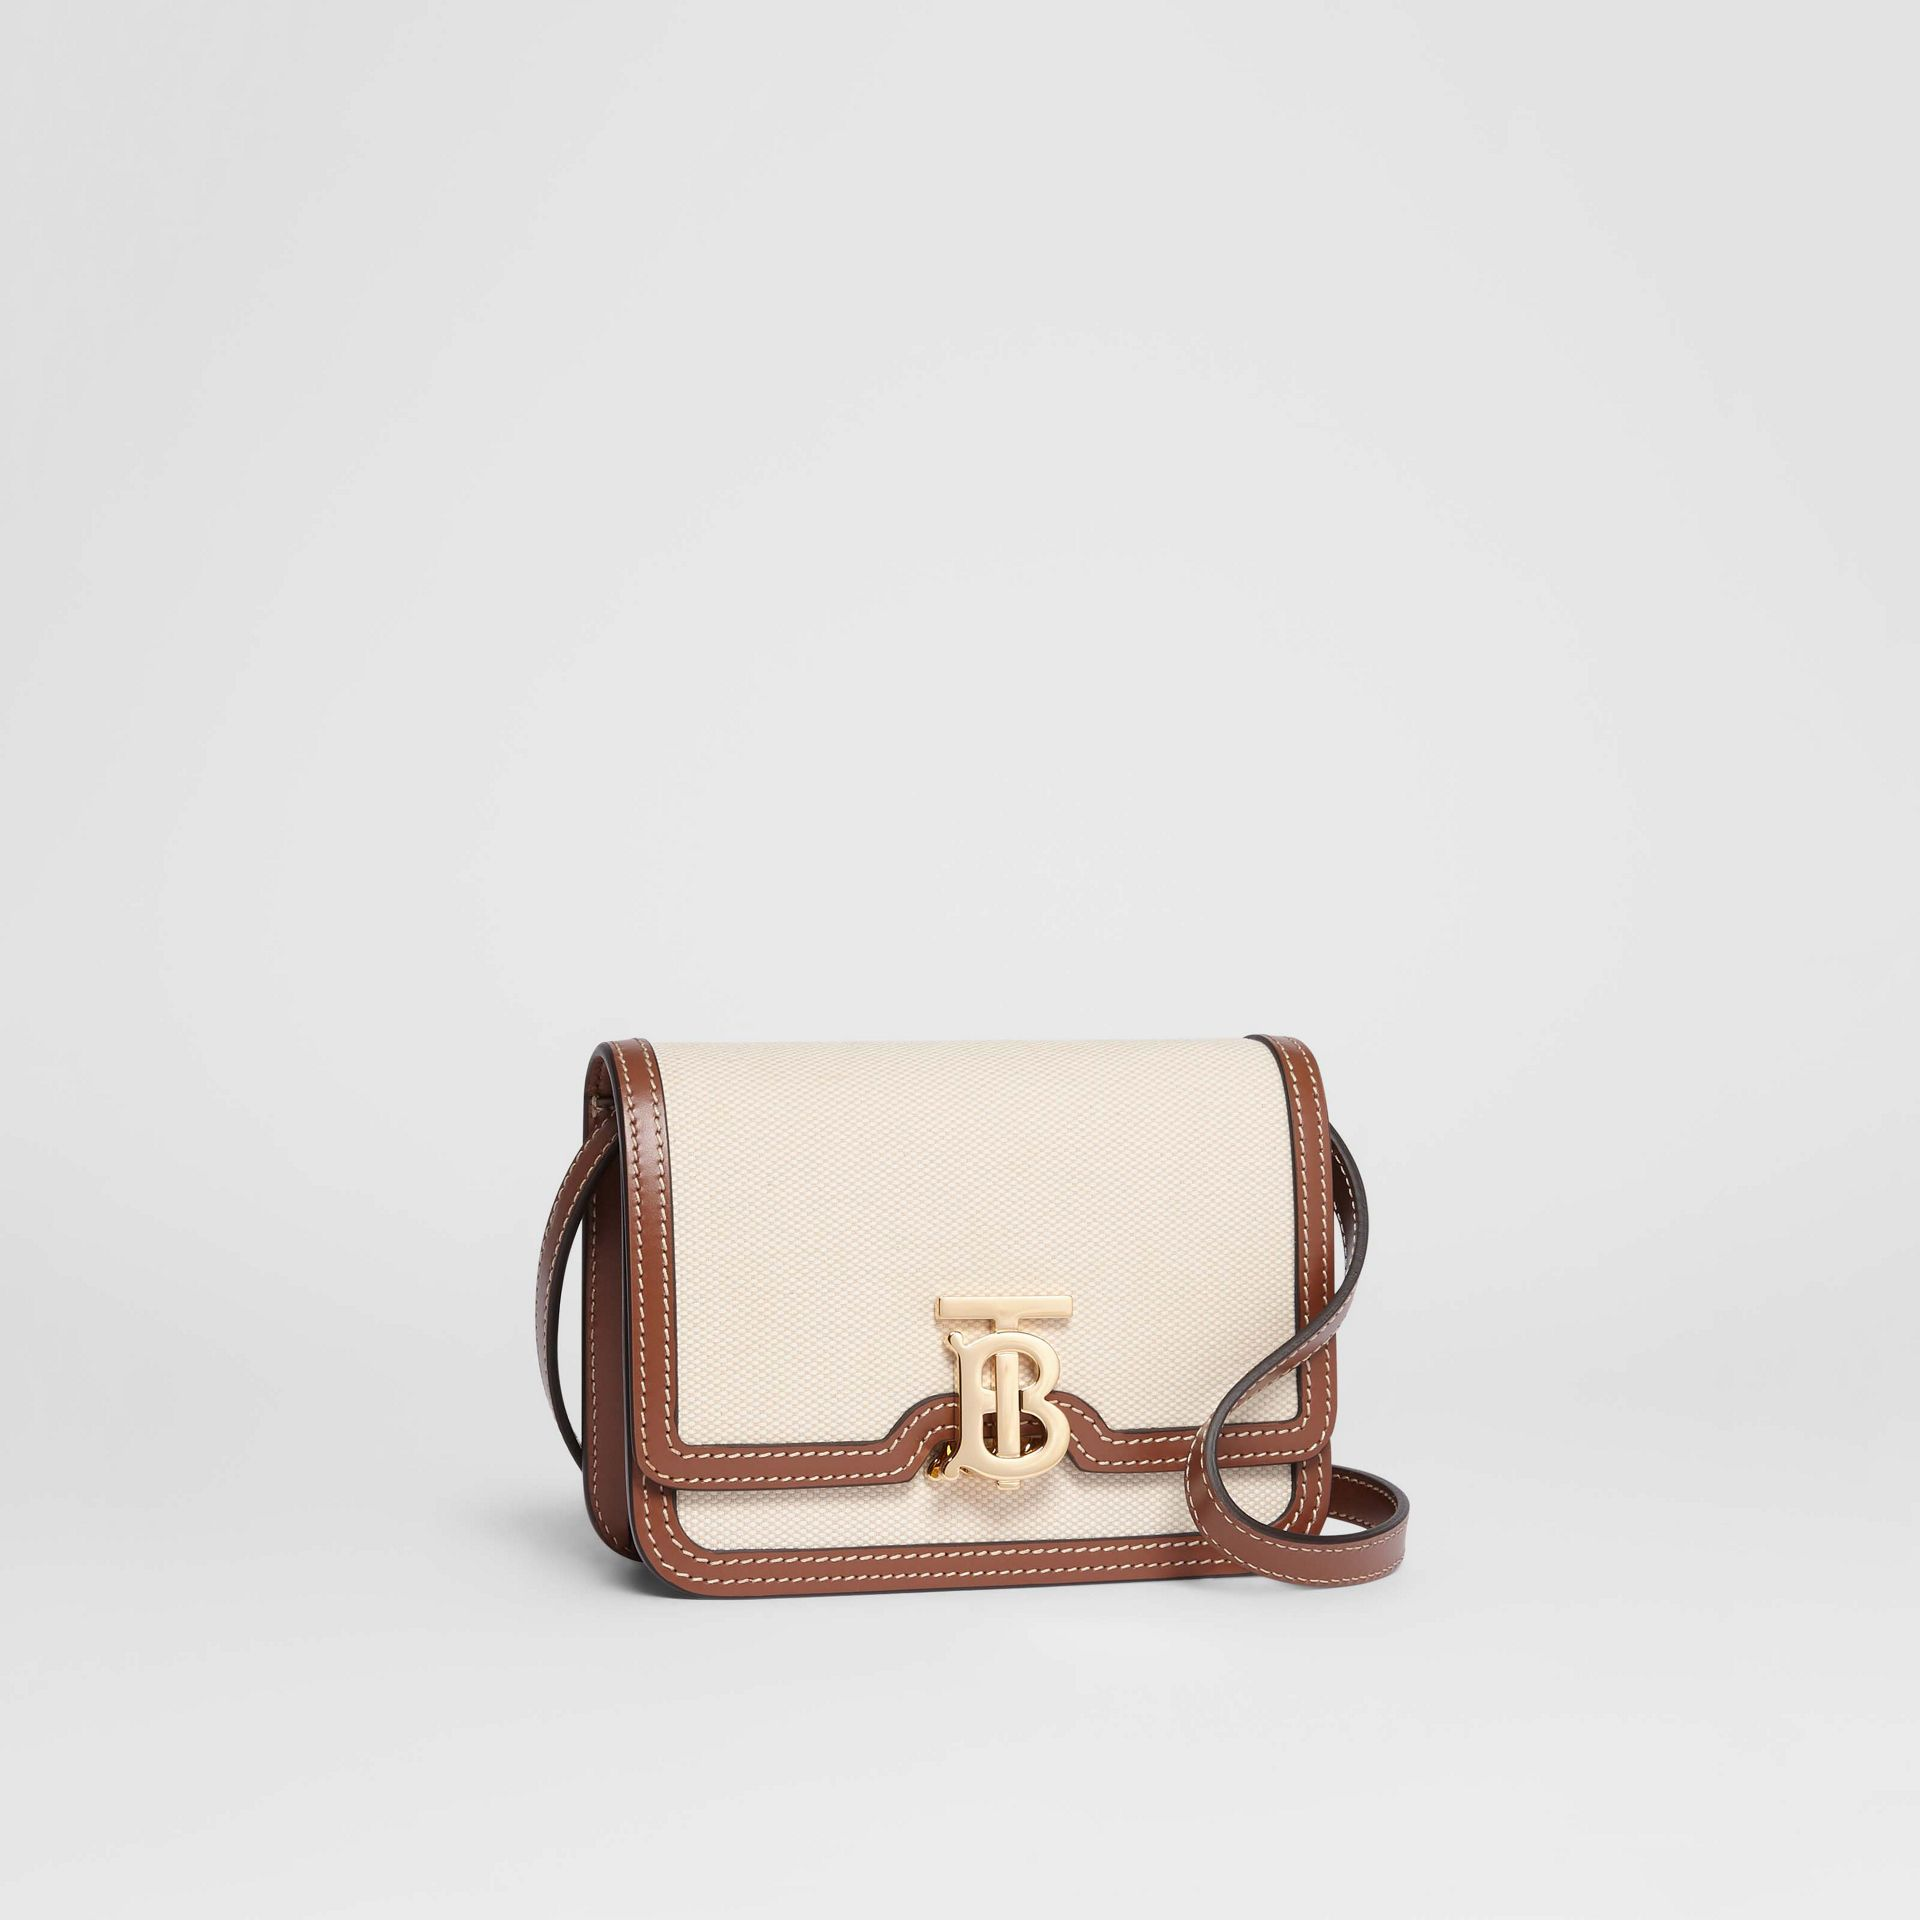 Mini Two-tone Canvas and Leather TB Bag in Natural/malt Brown - Women | Burberry - gallery image 6